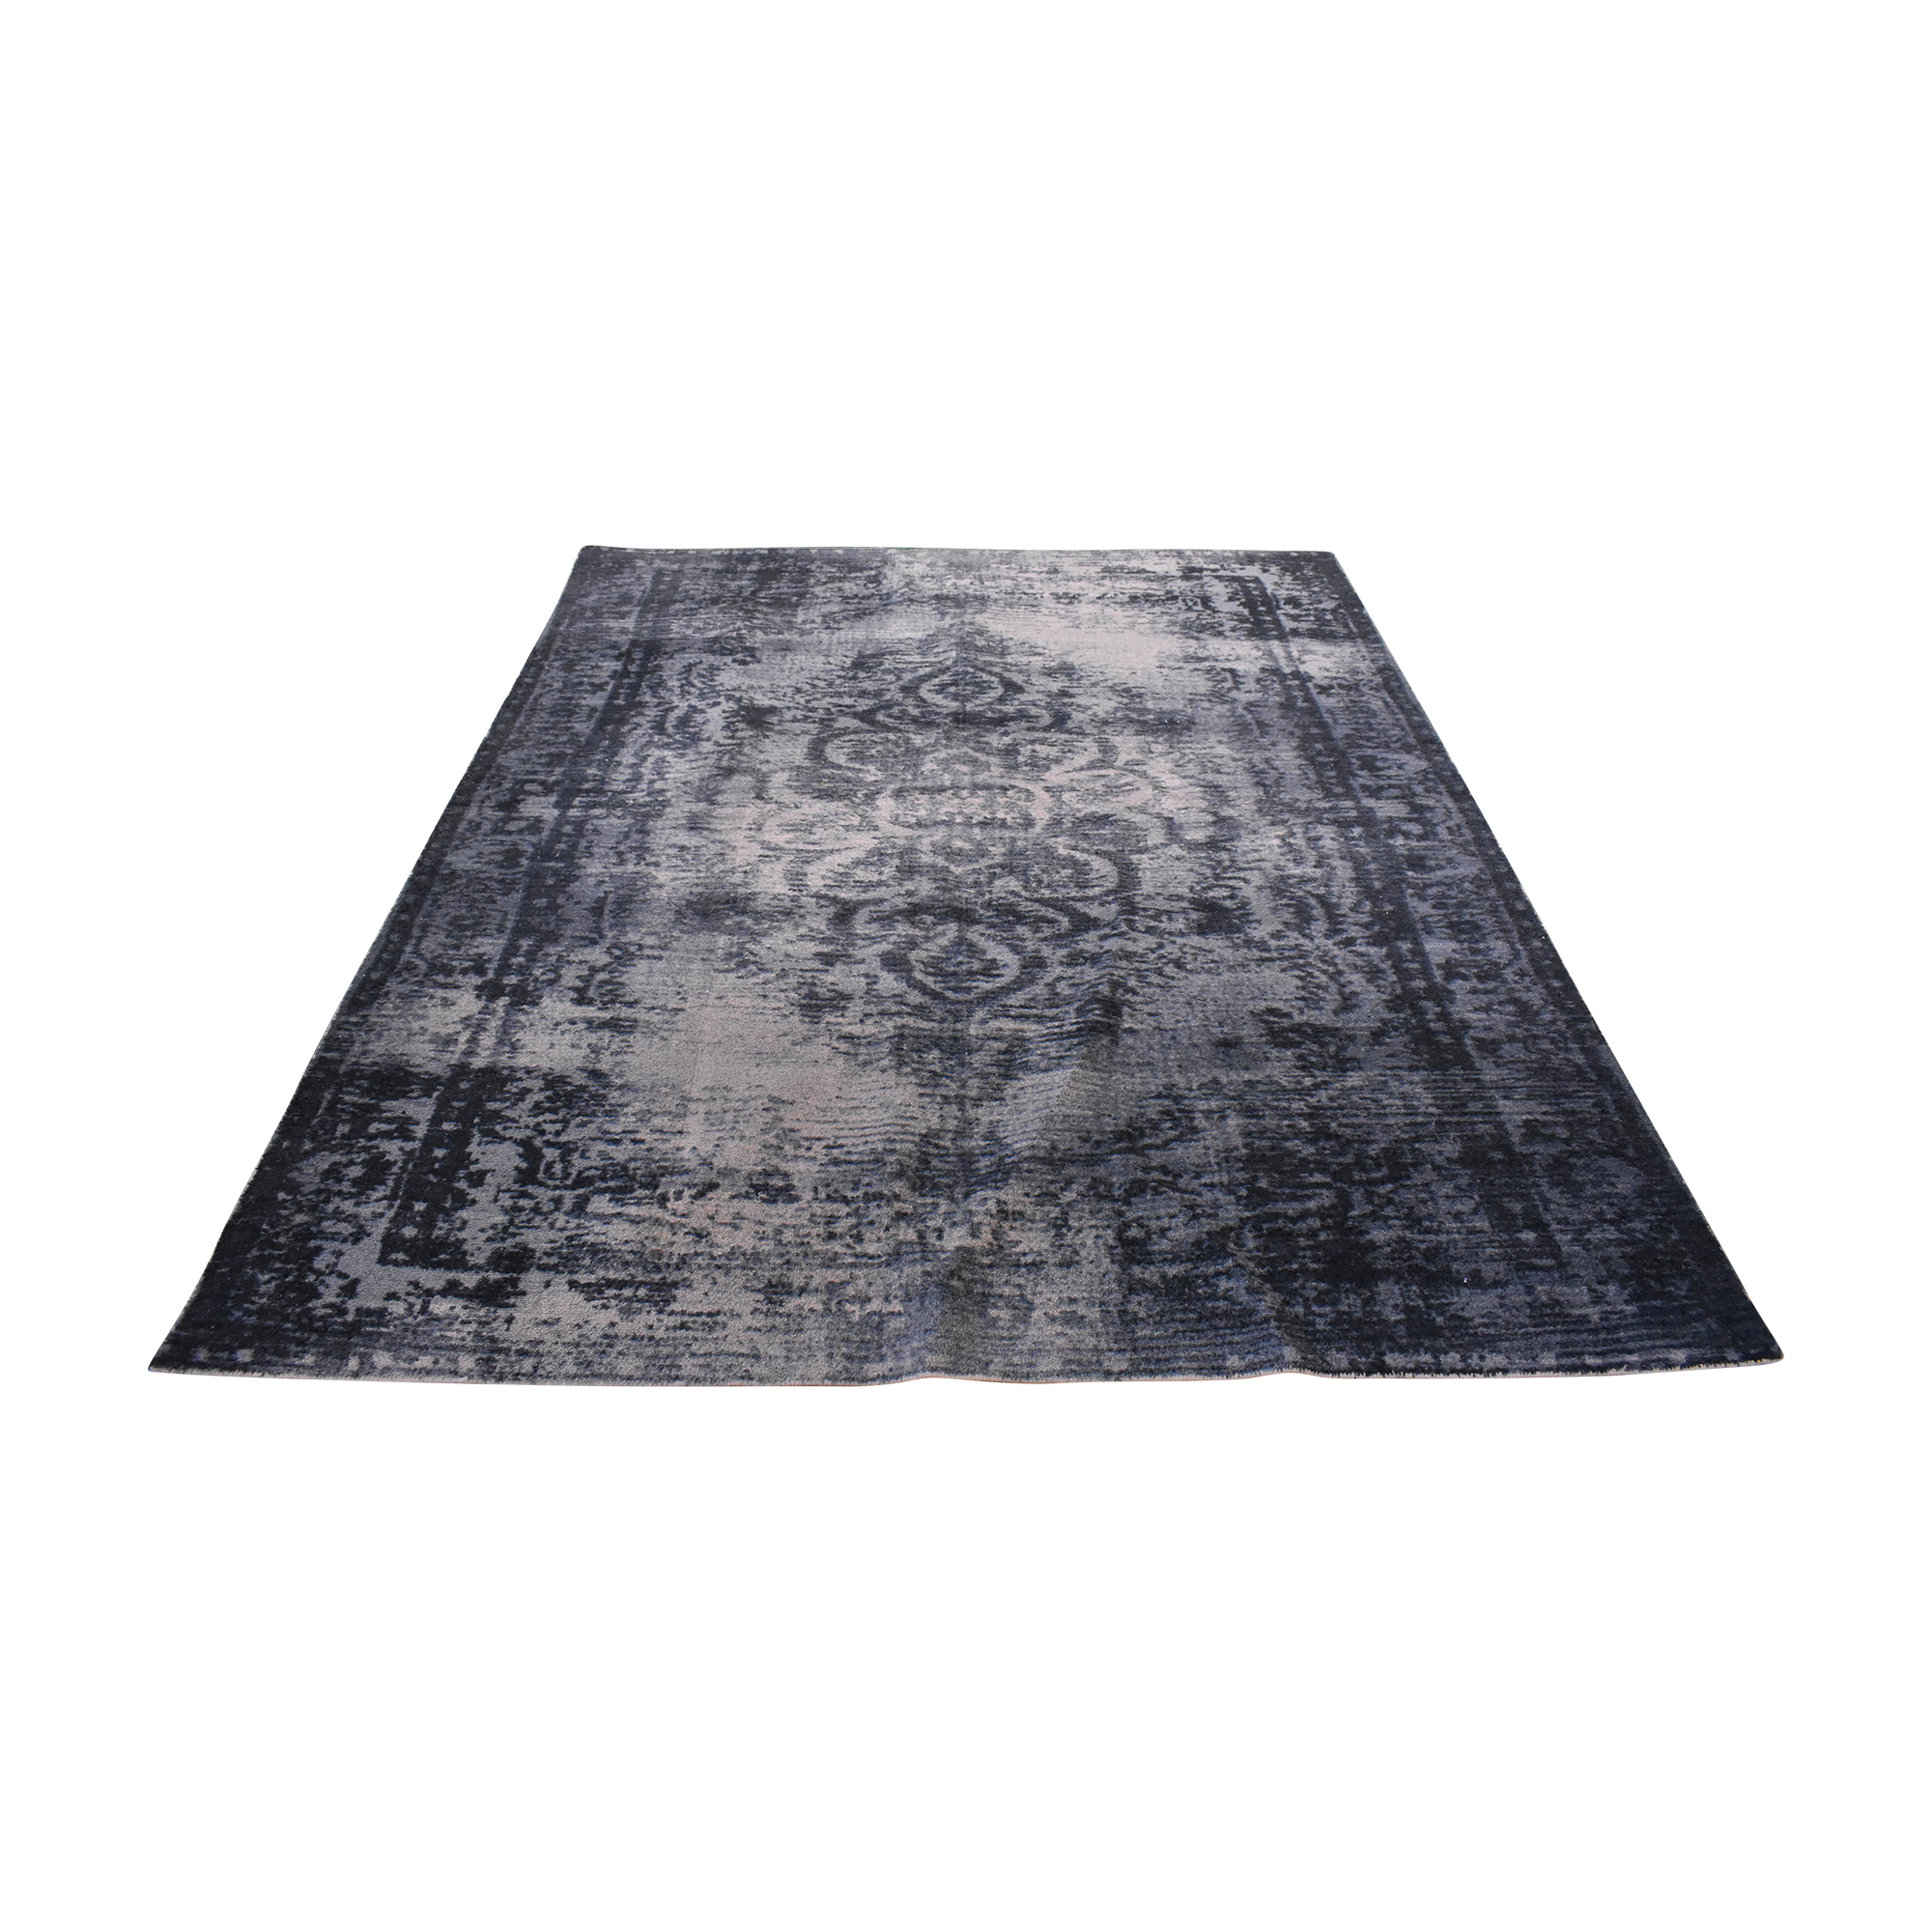 West Elm West Elm Distressed Arabesque Wool Rug pa